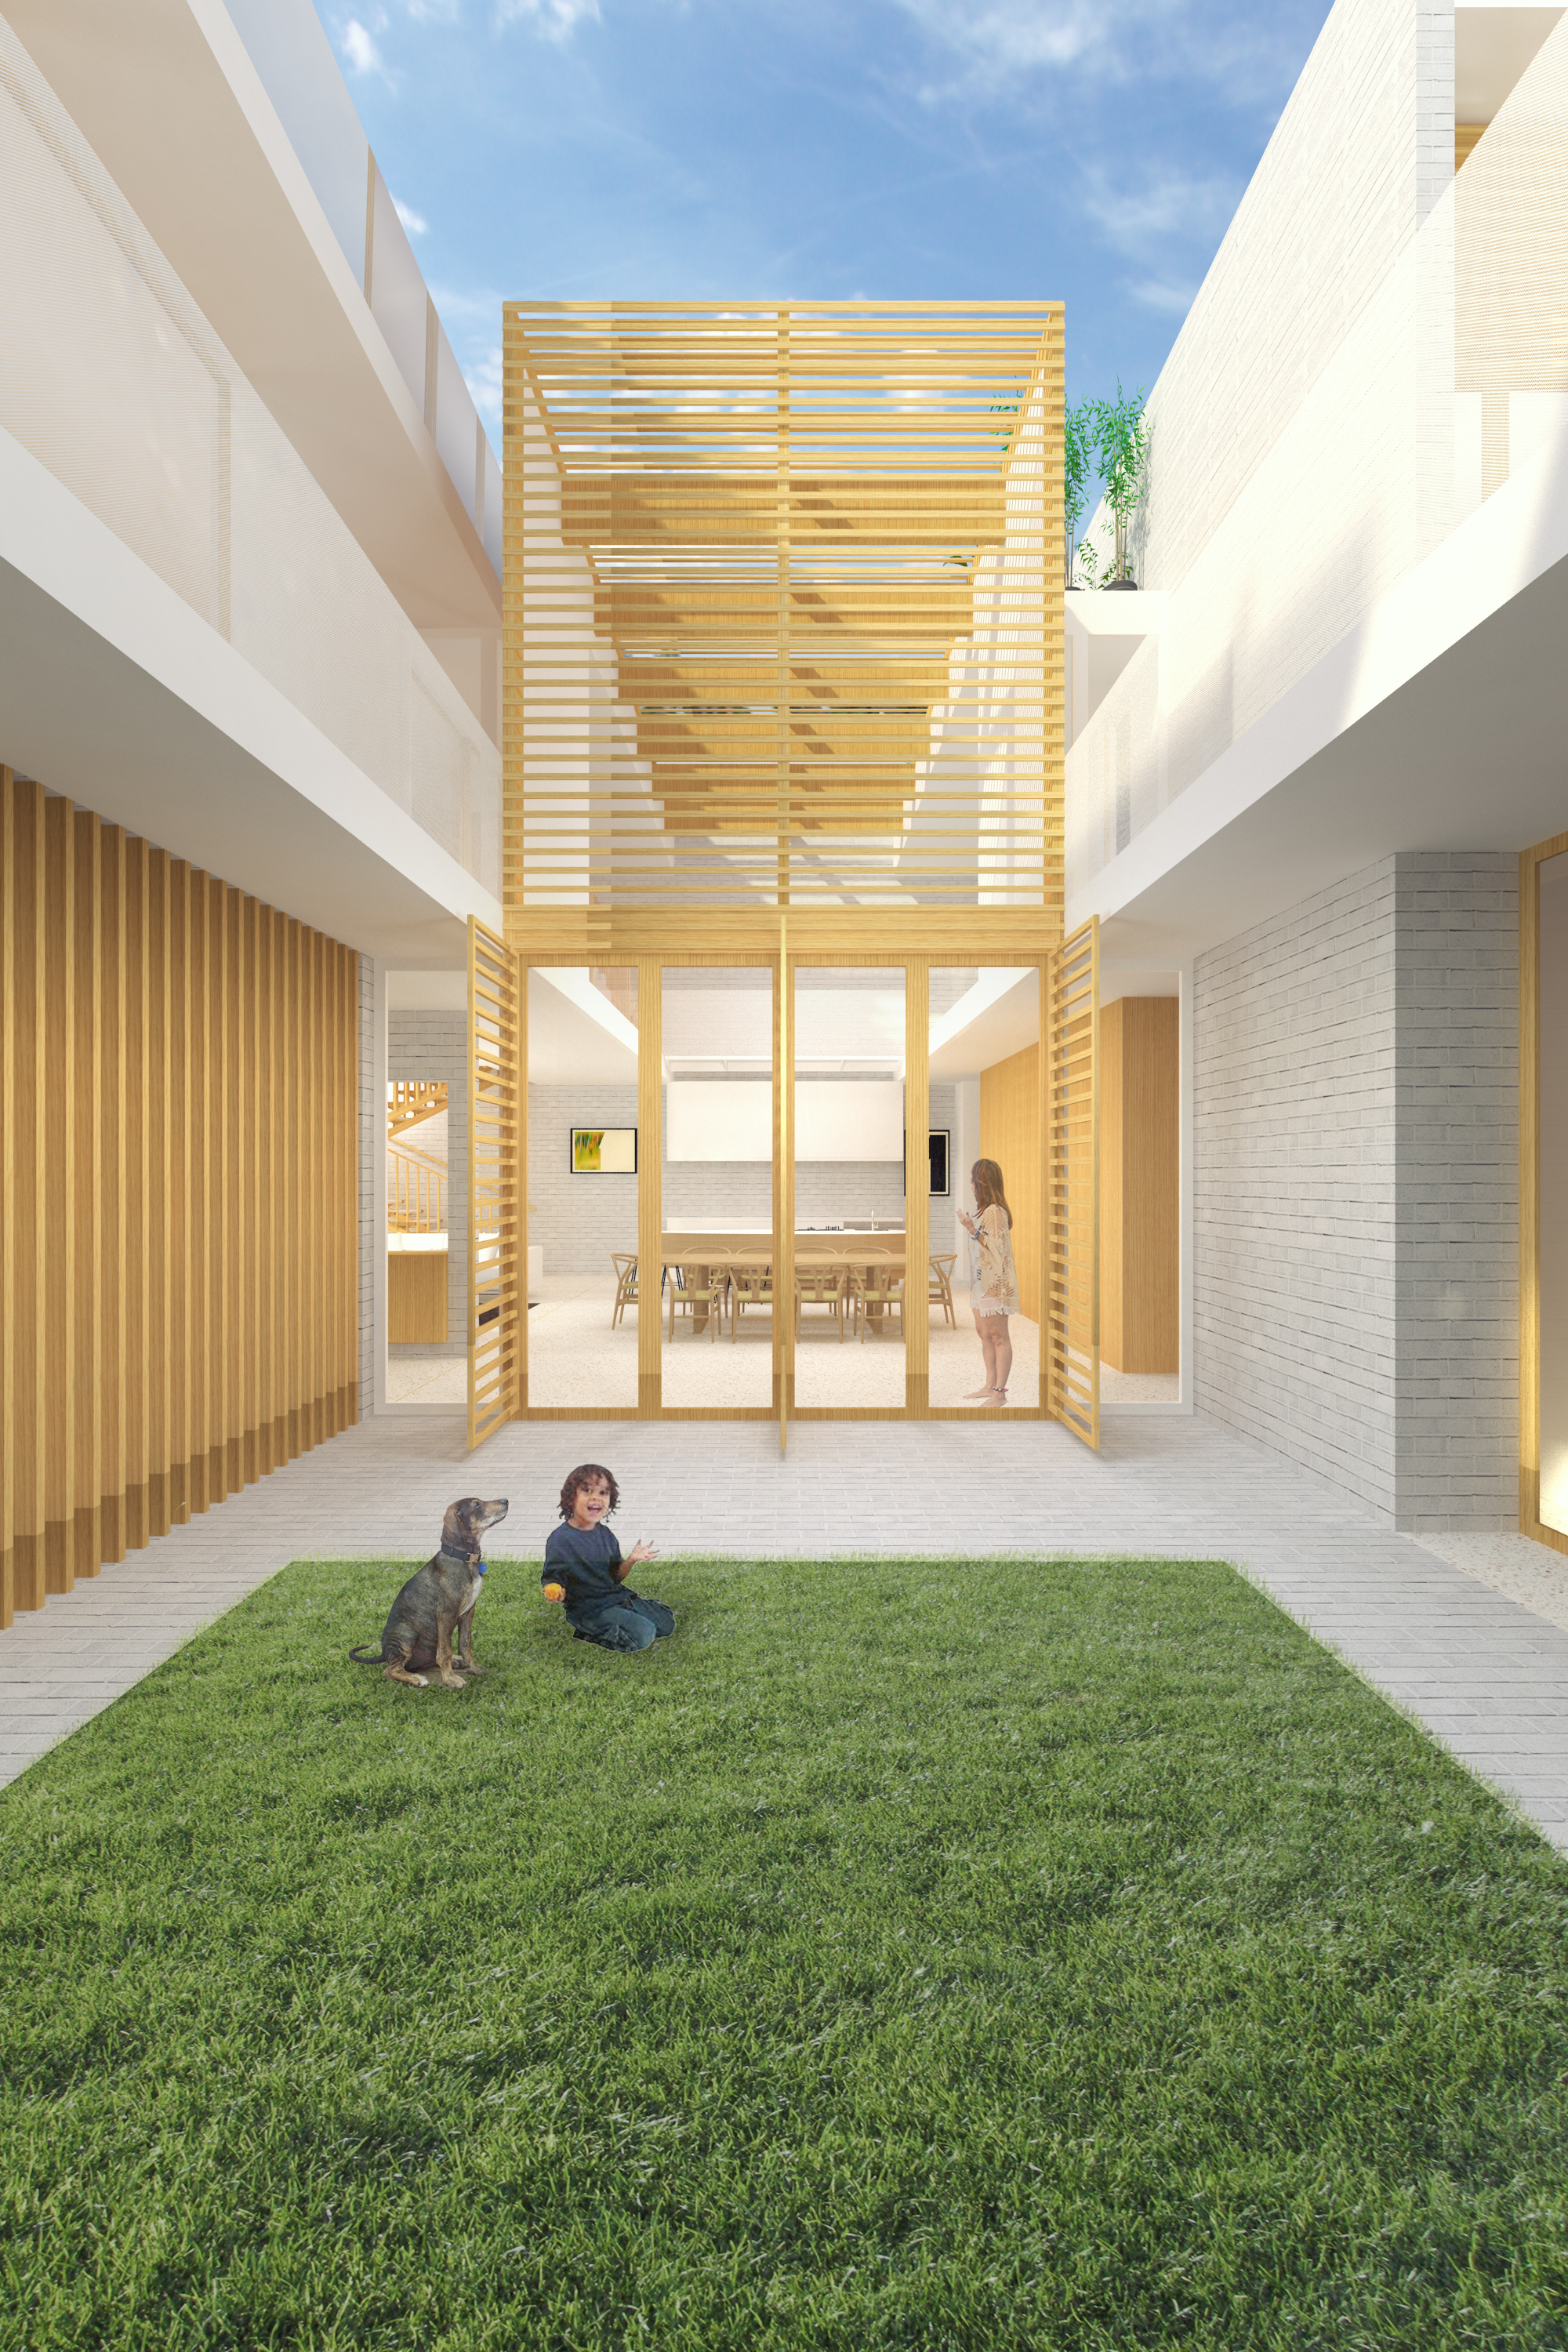 Rendering - The central void allows natural light and cool air to adequately penetrate the building in all areas.